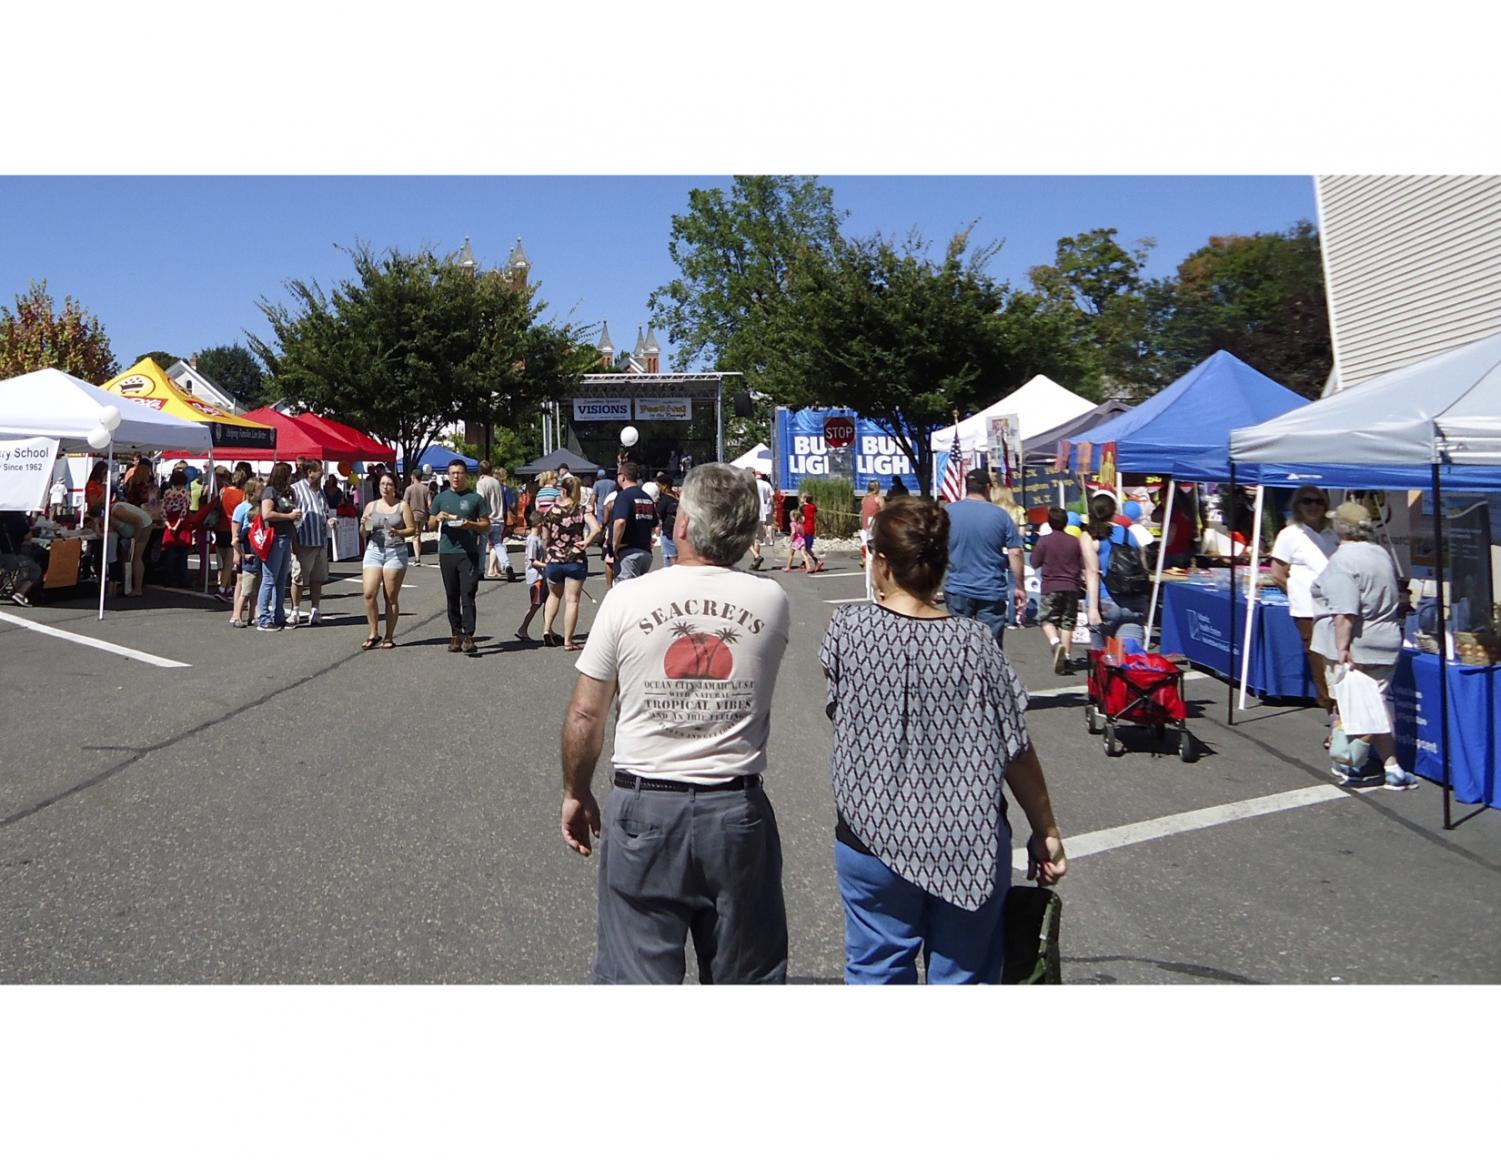 Vendors lined up and down the sides of local parking lot, giving the festival goers freedom to roam and explore the various stations. (Photo by Kassidy Vargas)